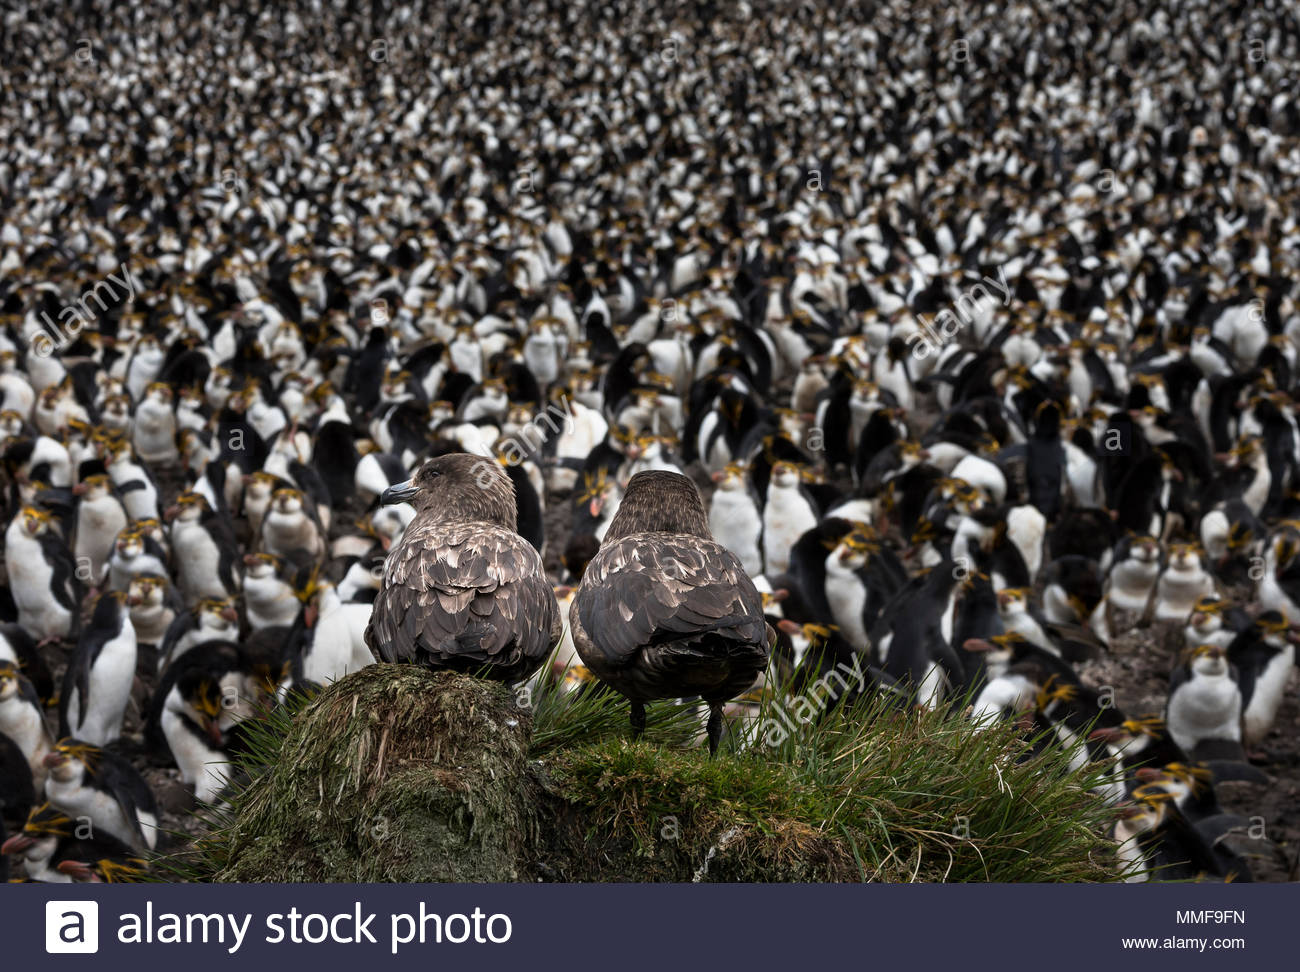 Two Brown skuas, Stercorarius antarcticus, watch a colony of Royal penguins, Eudyptes schlegeli. - Stock Image